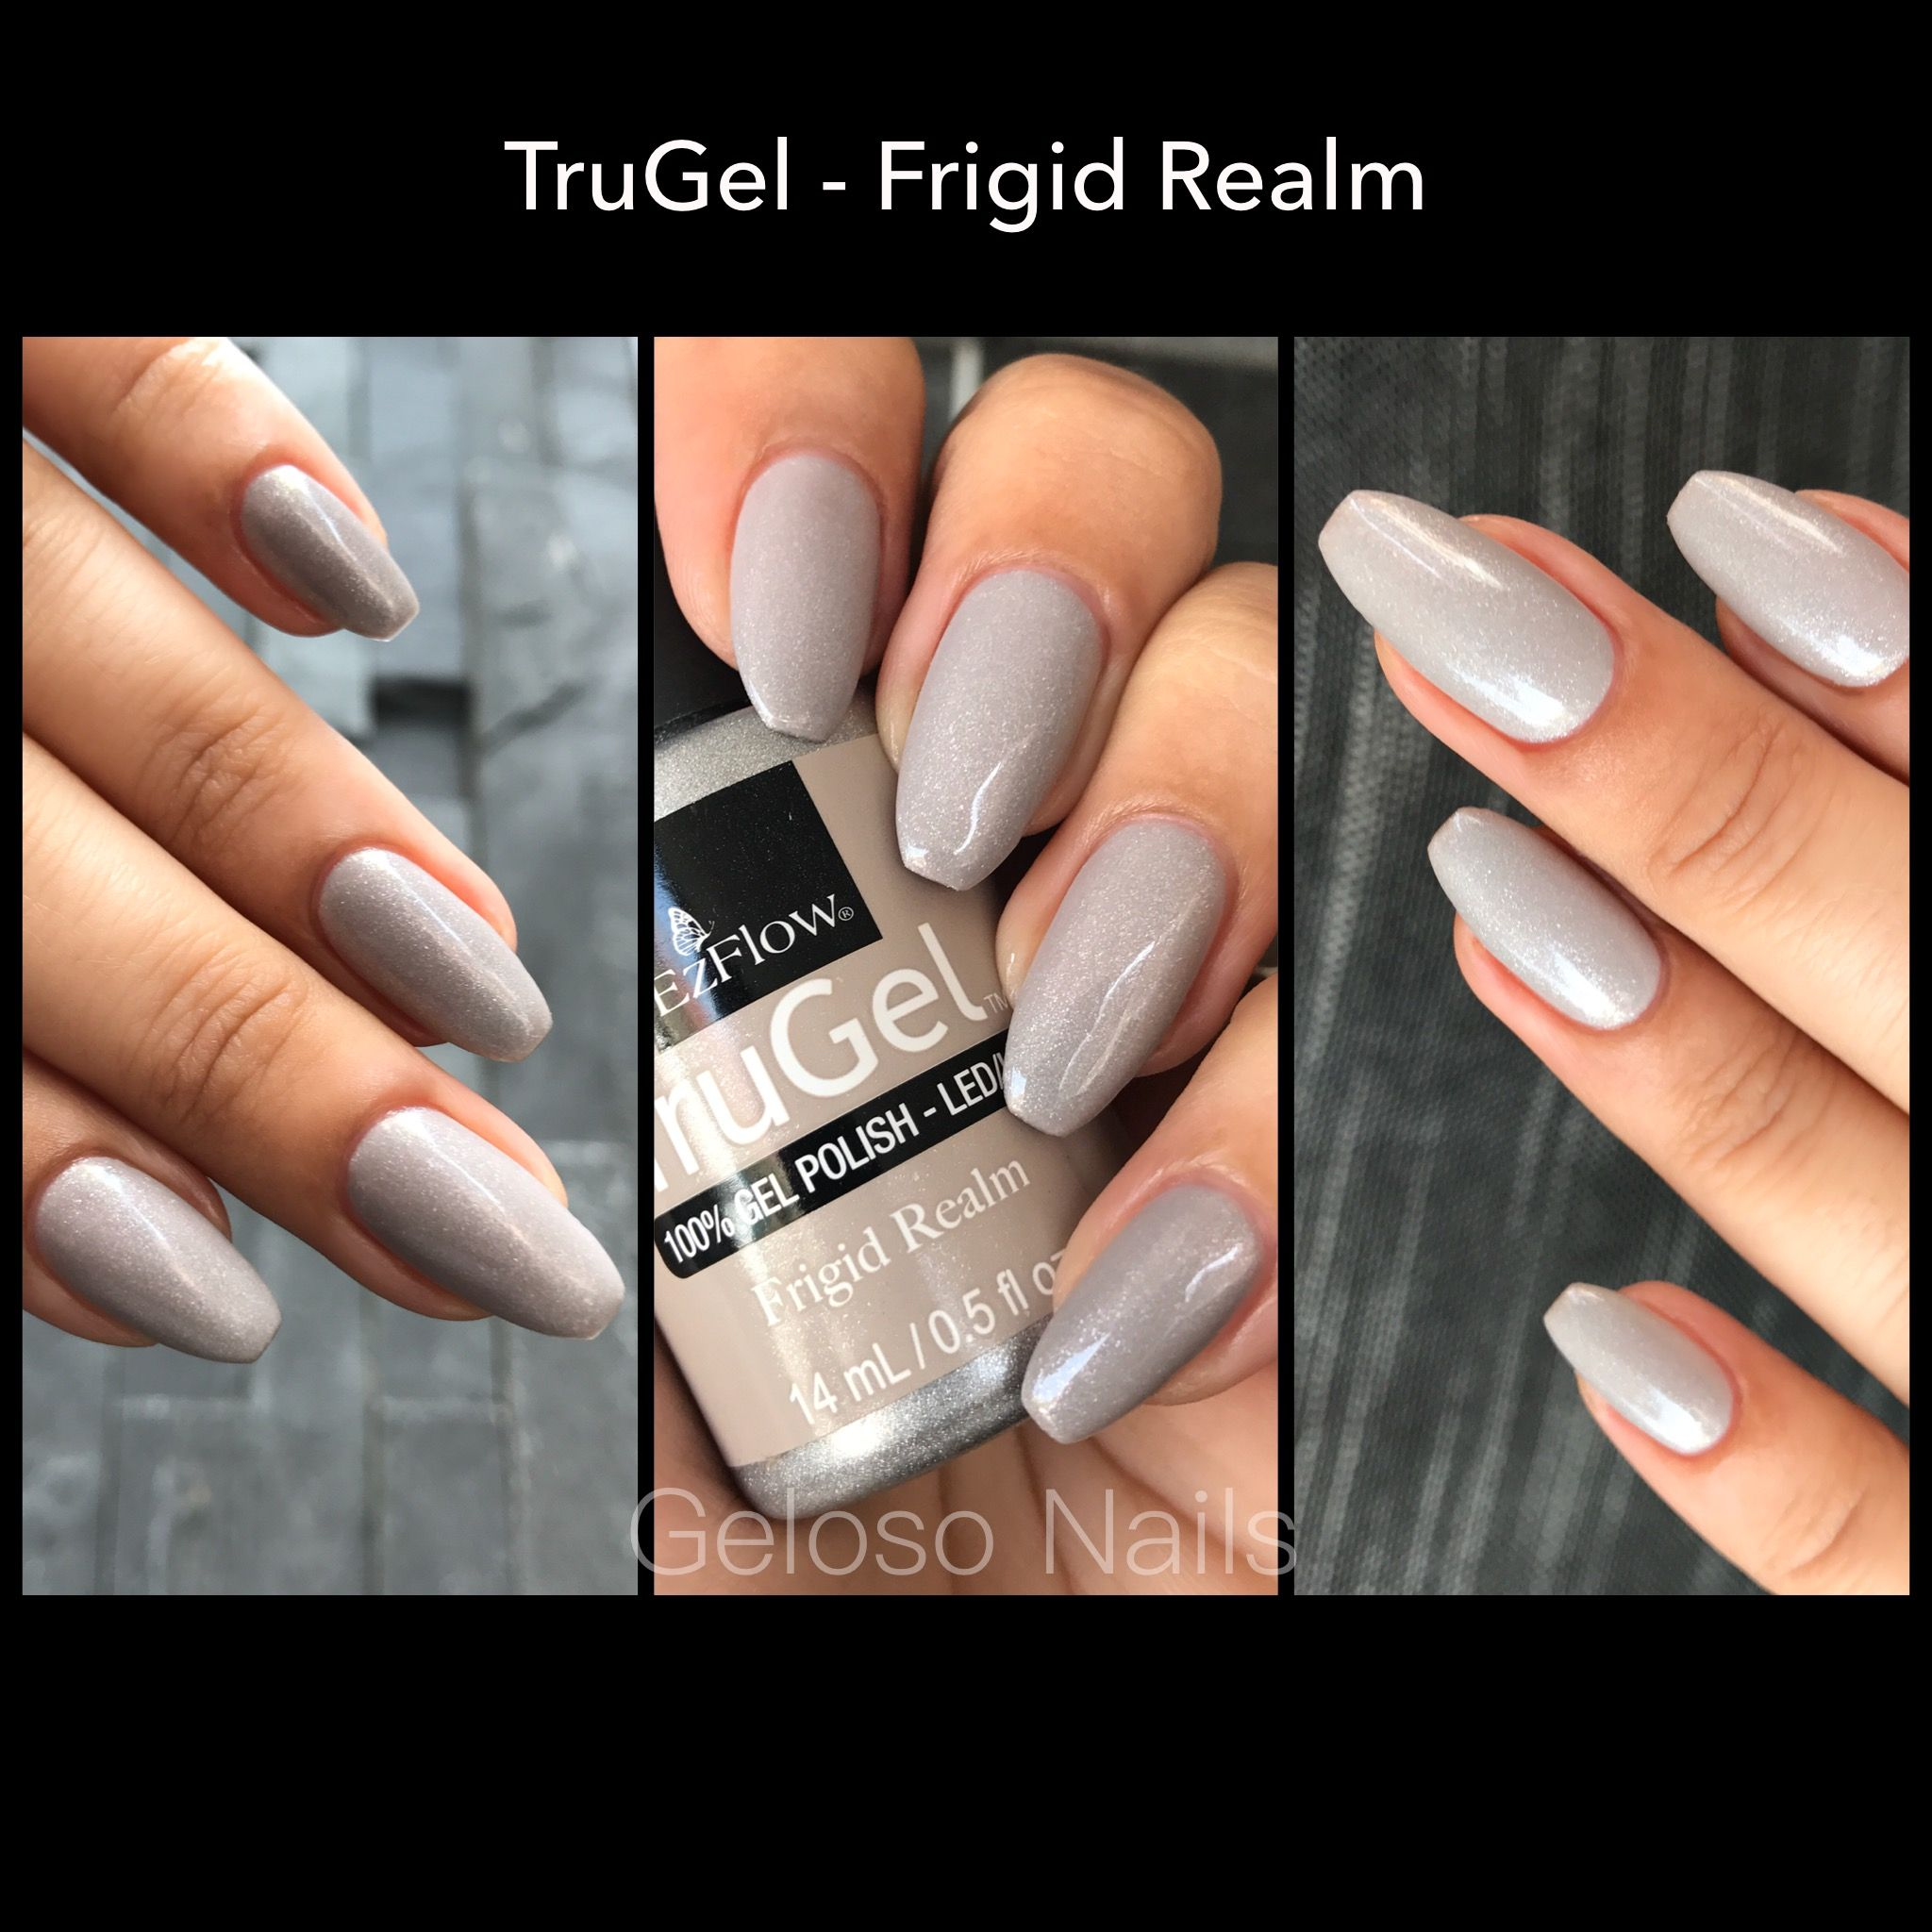 Ezflow TruGel Frigid Realm from the ice empress collection ...